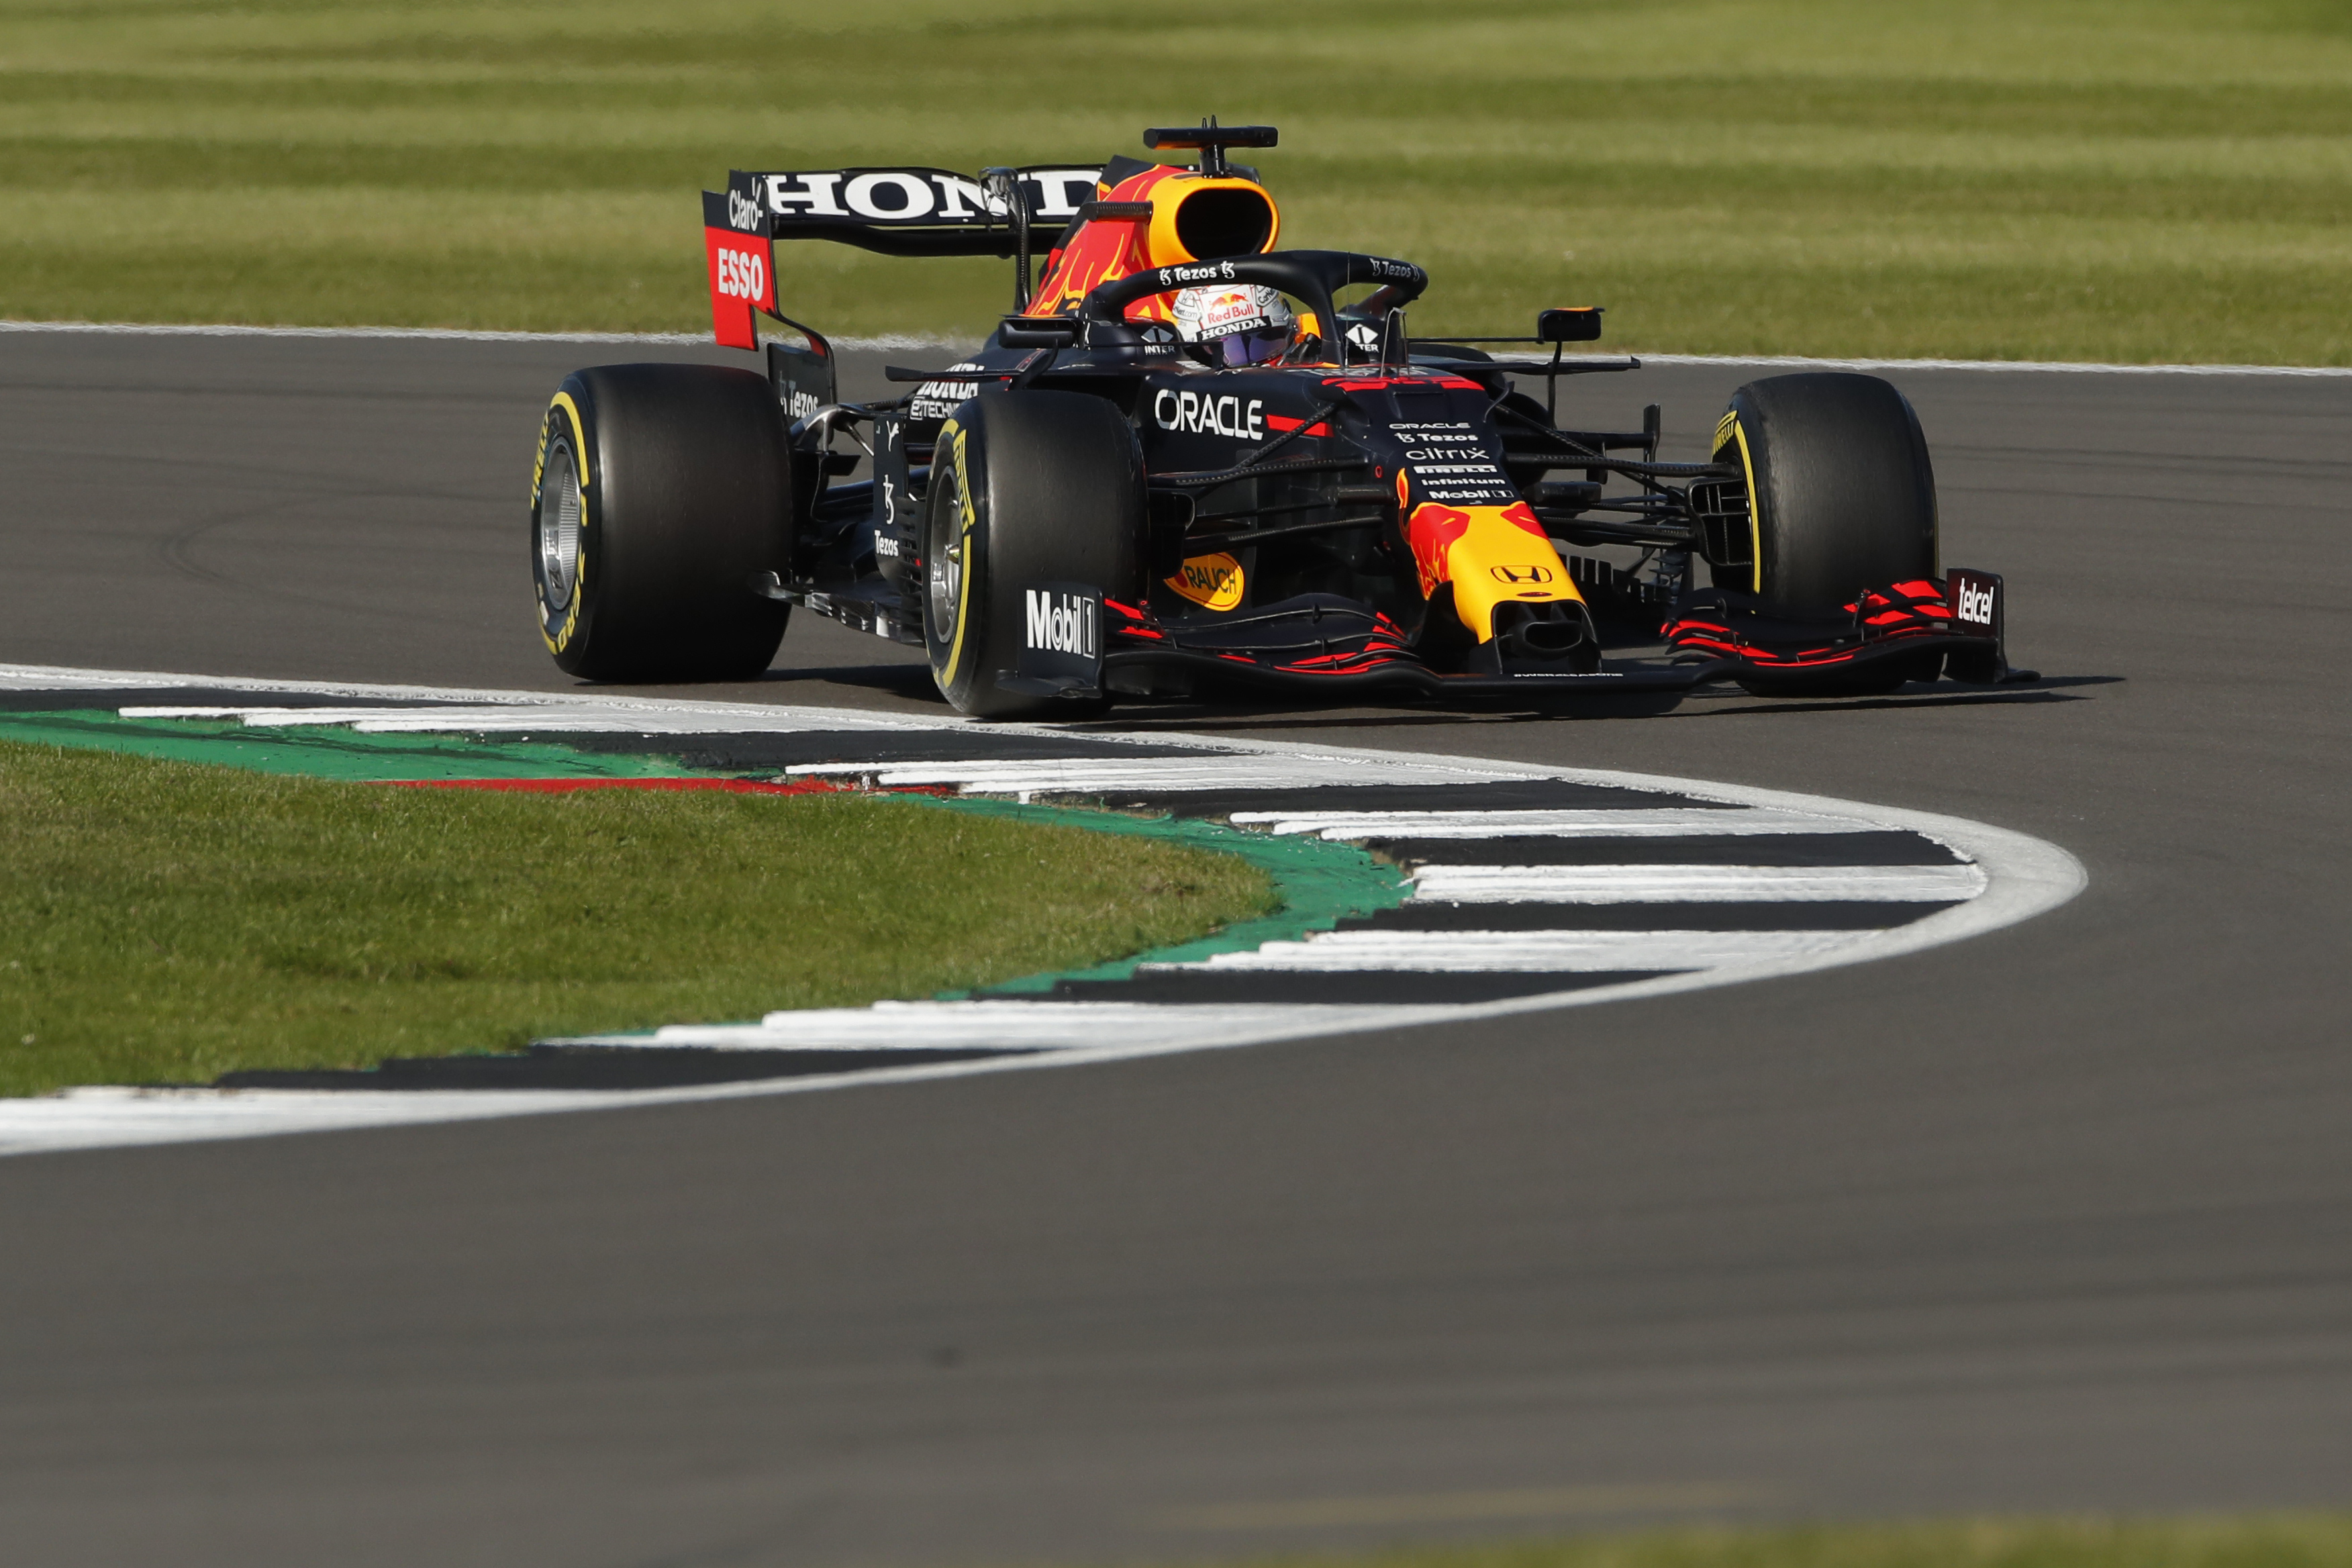 Formula One F1 - British Grand Prix - Silverstone Circuit, Silverstone, Britain - July 17, 2021 Red Bull's Max Verstappen during sprint qualifying REUTERS/Andrew Couldridge